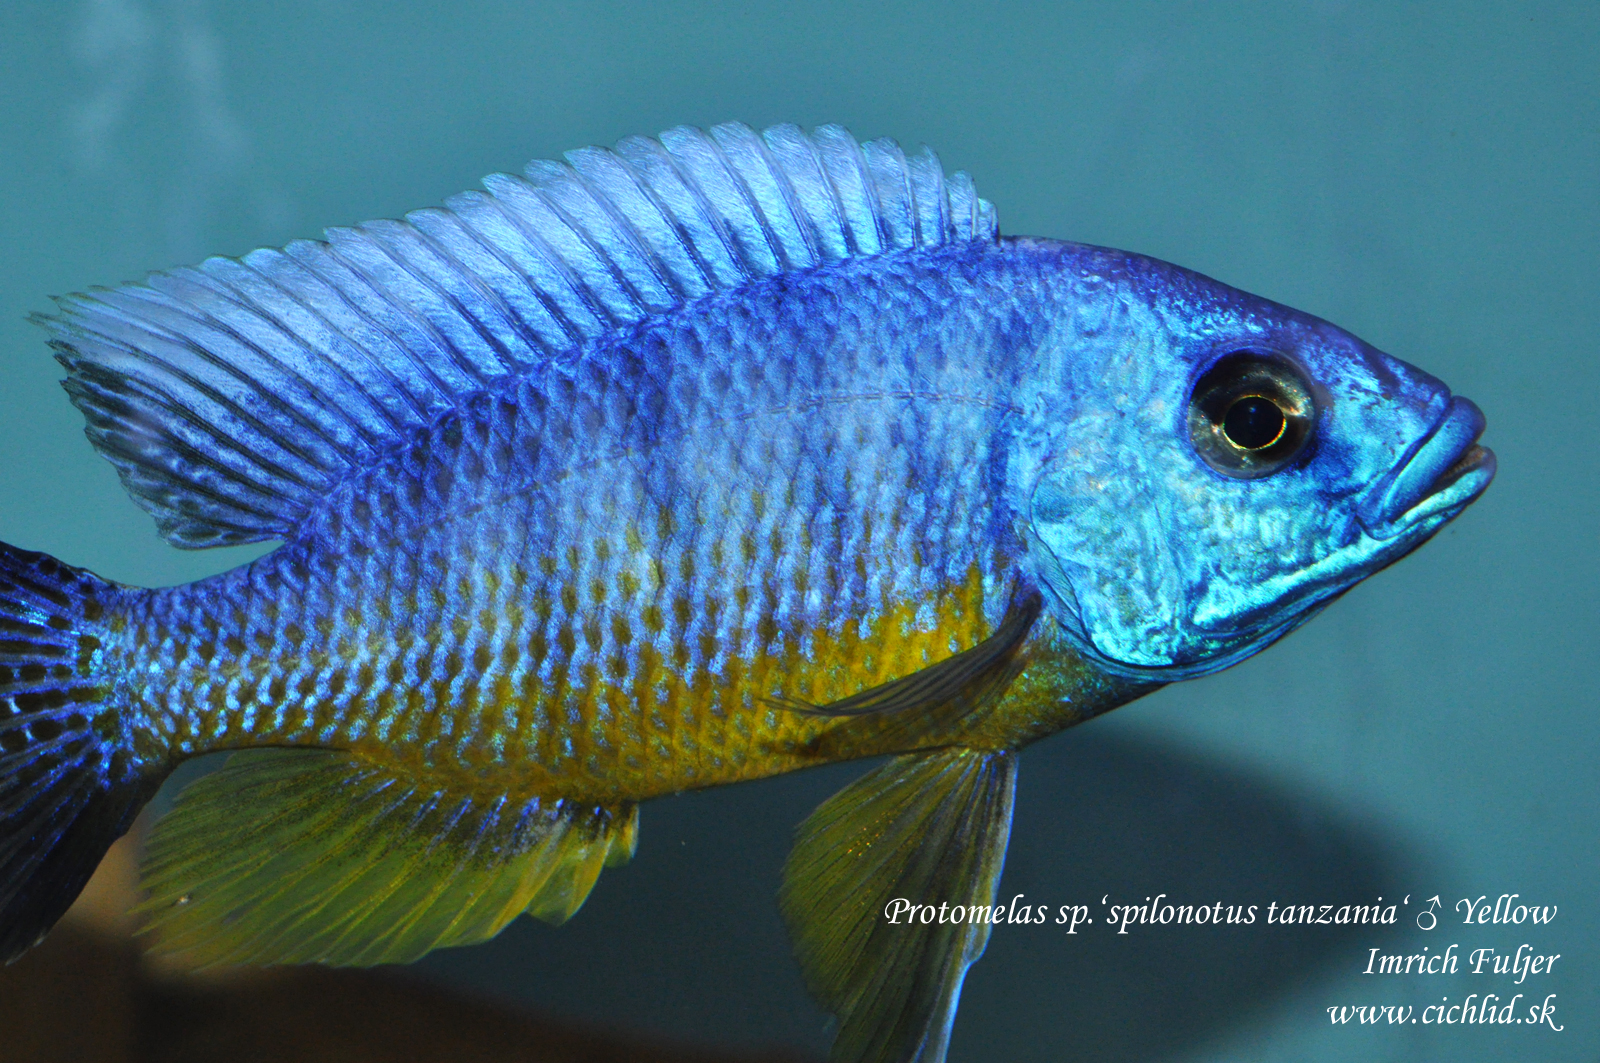 ♂ Protomelas sp.'spilonotus tanzania' Yellow